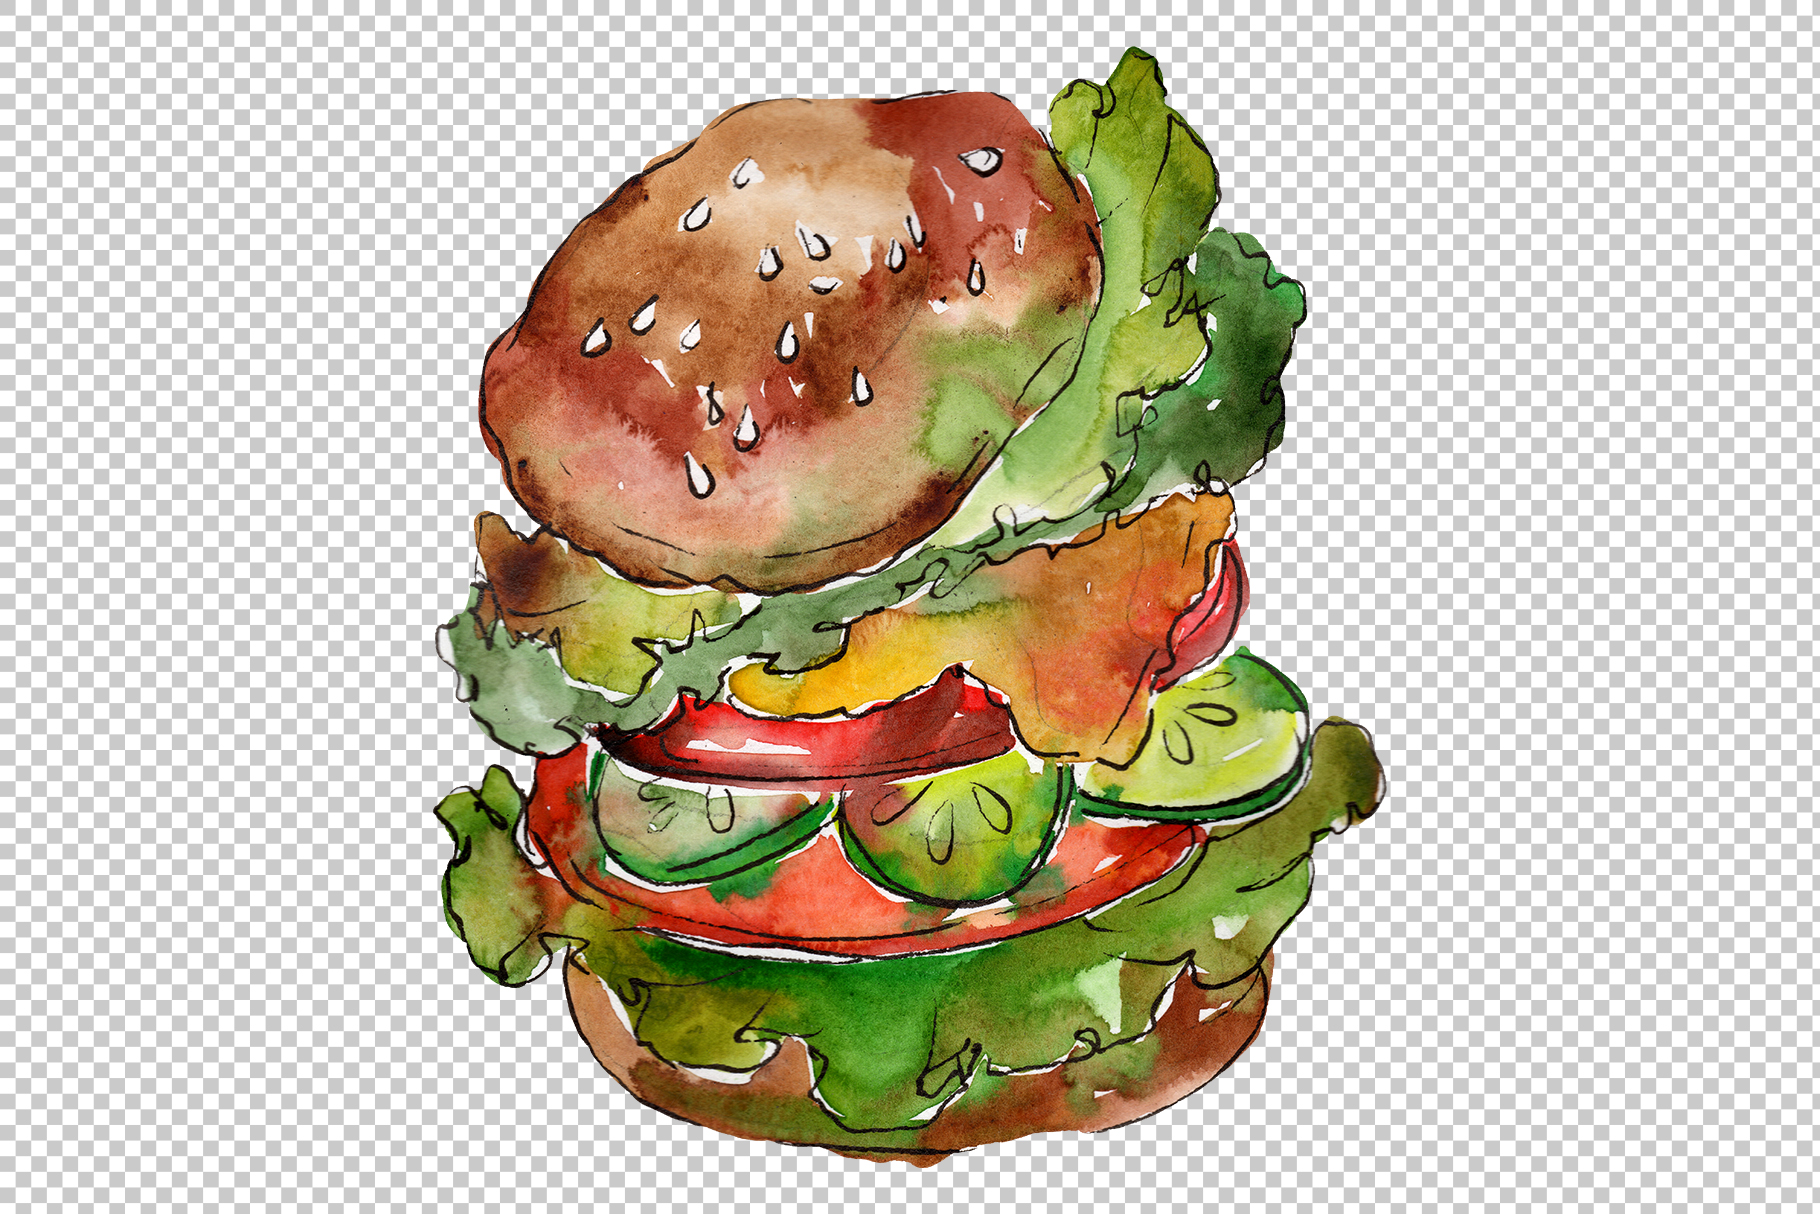 Hamburger for gentleman watercolor png example image 3